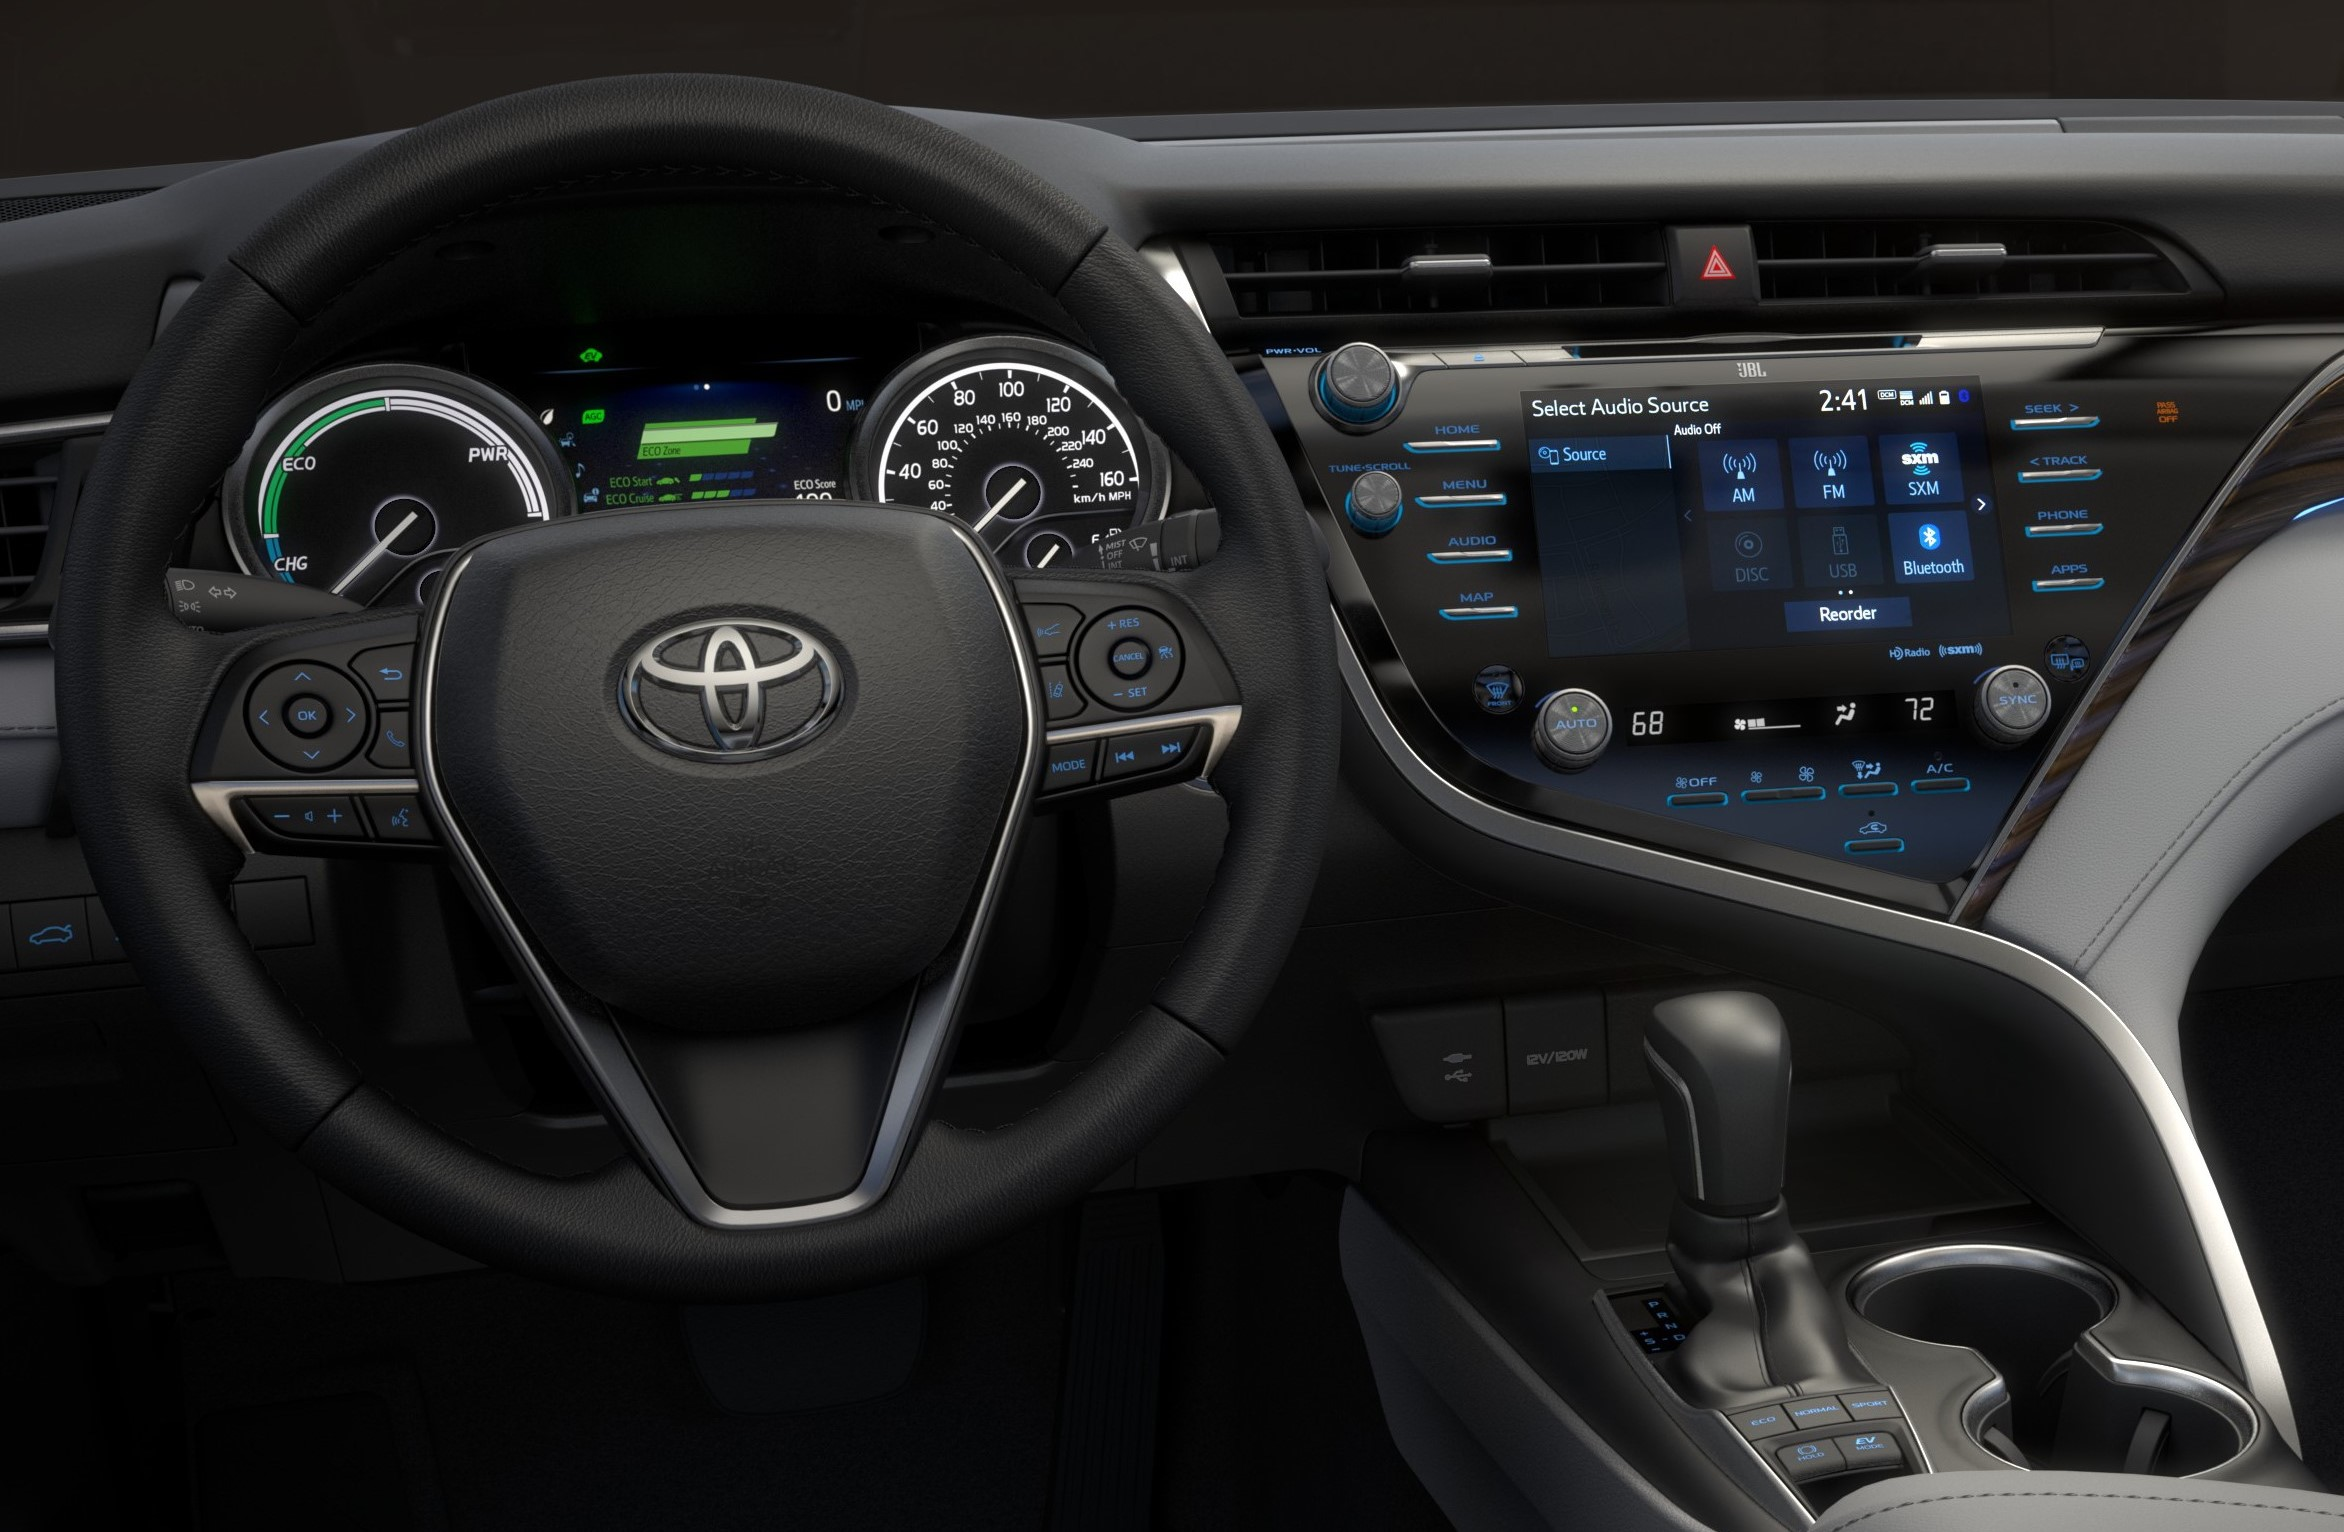 Toyota Camry in addition Toyota Camry Se Hybrid C besides B F C further F likewise Toyota Corolla Mk Fuse Box Engine  partment. on toyota electric power steering system